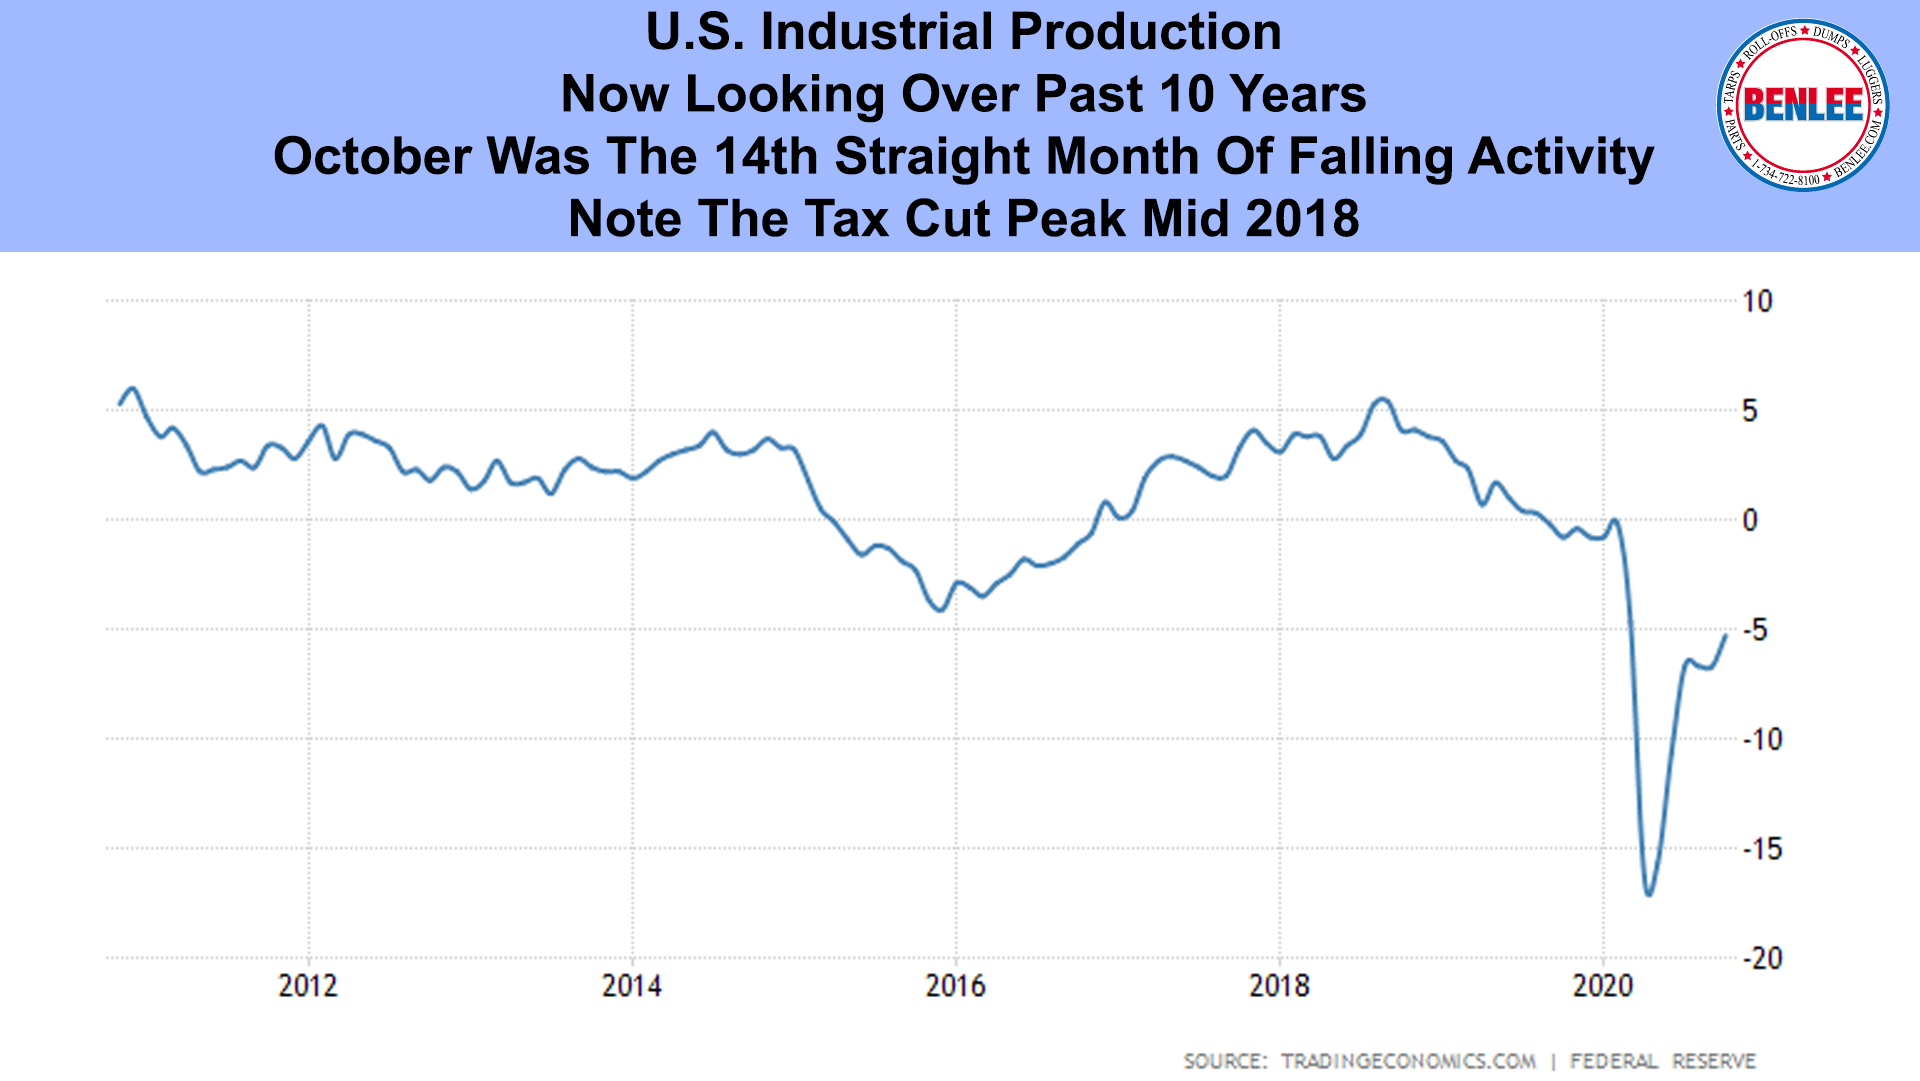 U.S. Industrial Production 10 Year